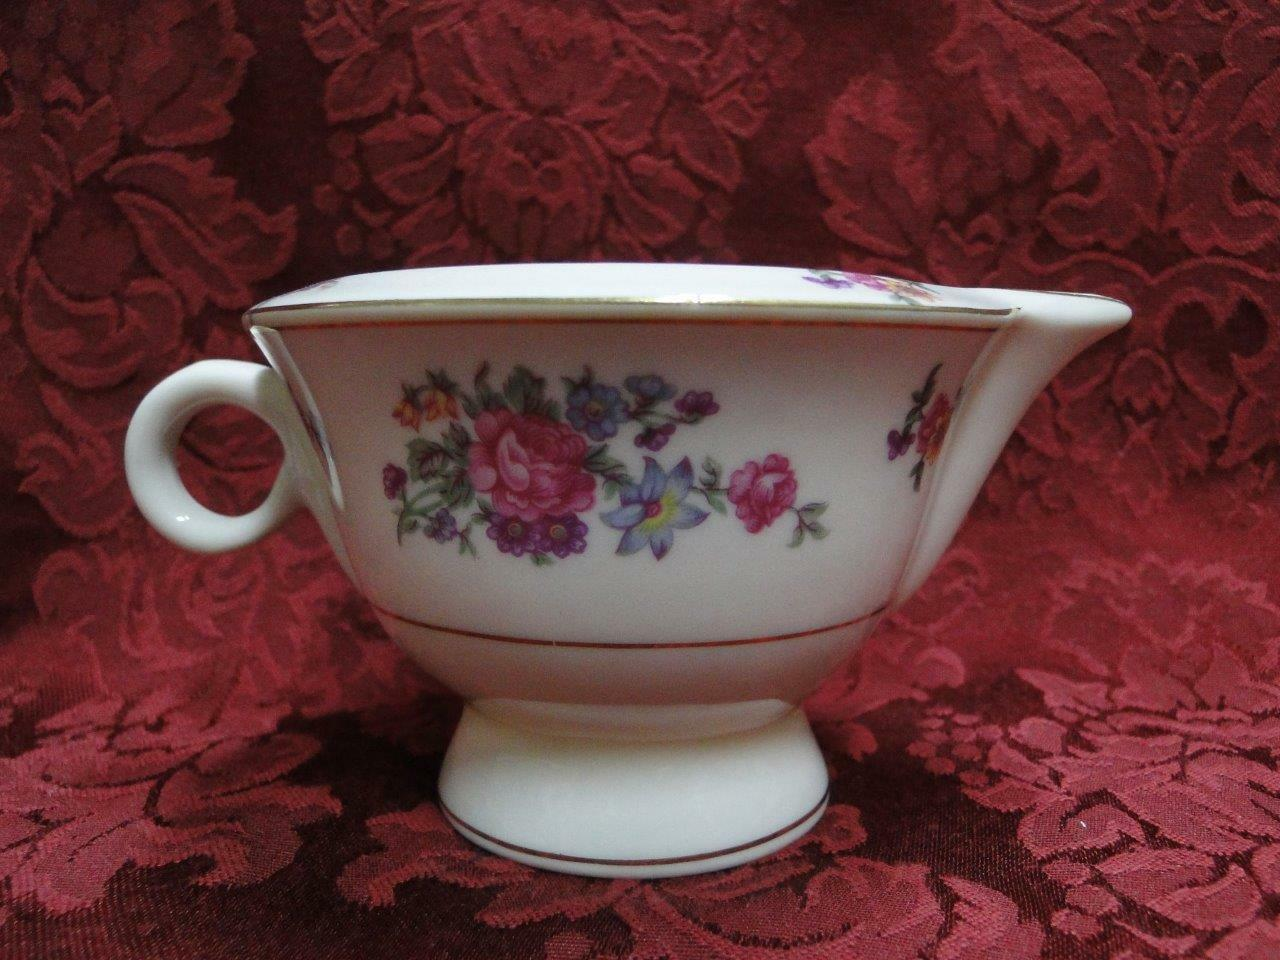 Haviland (New York) Arlington, Roses, Flowers, Gold Trim: Cream Pitcher 2 3/4""